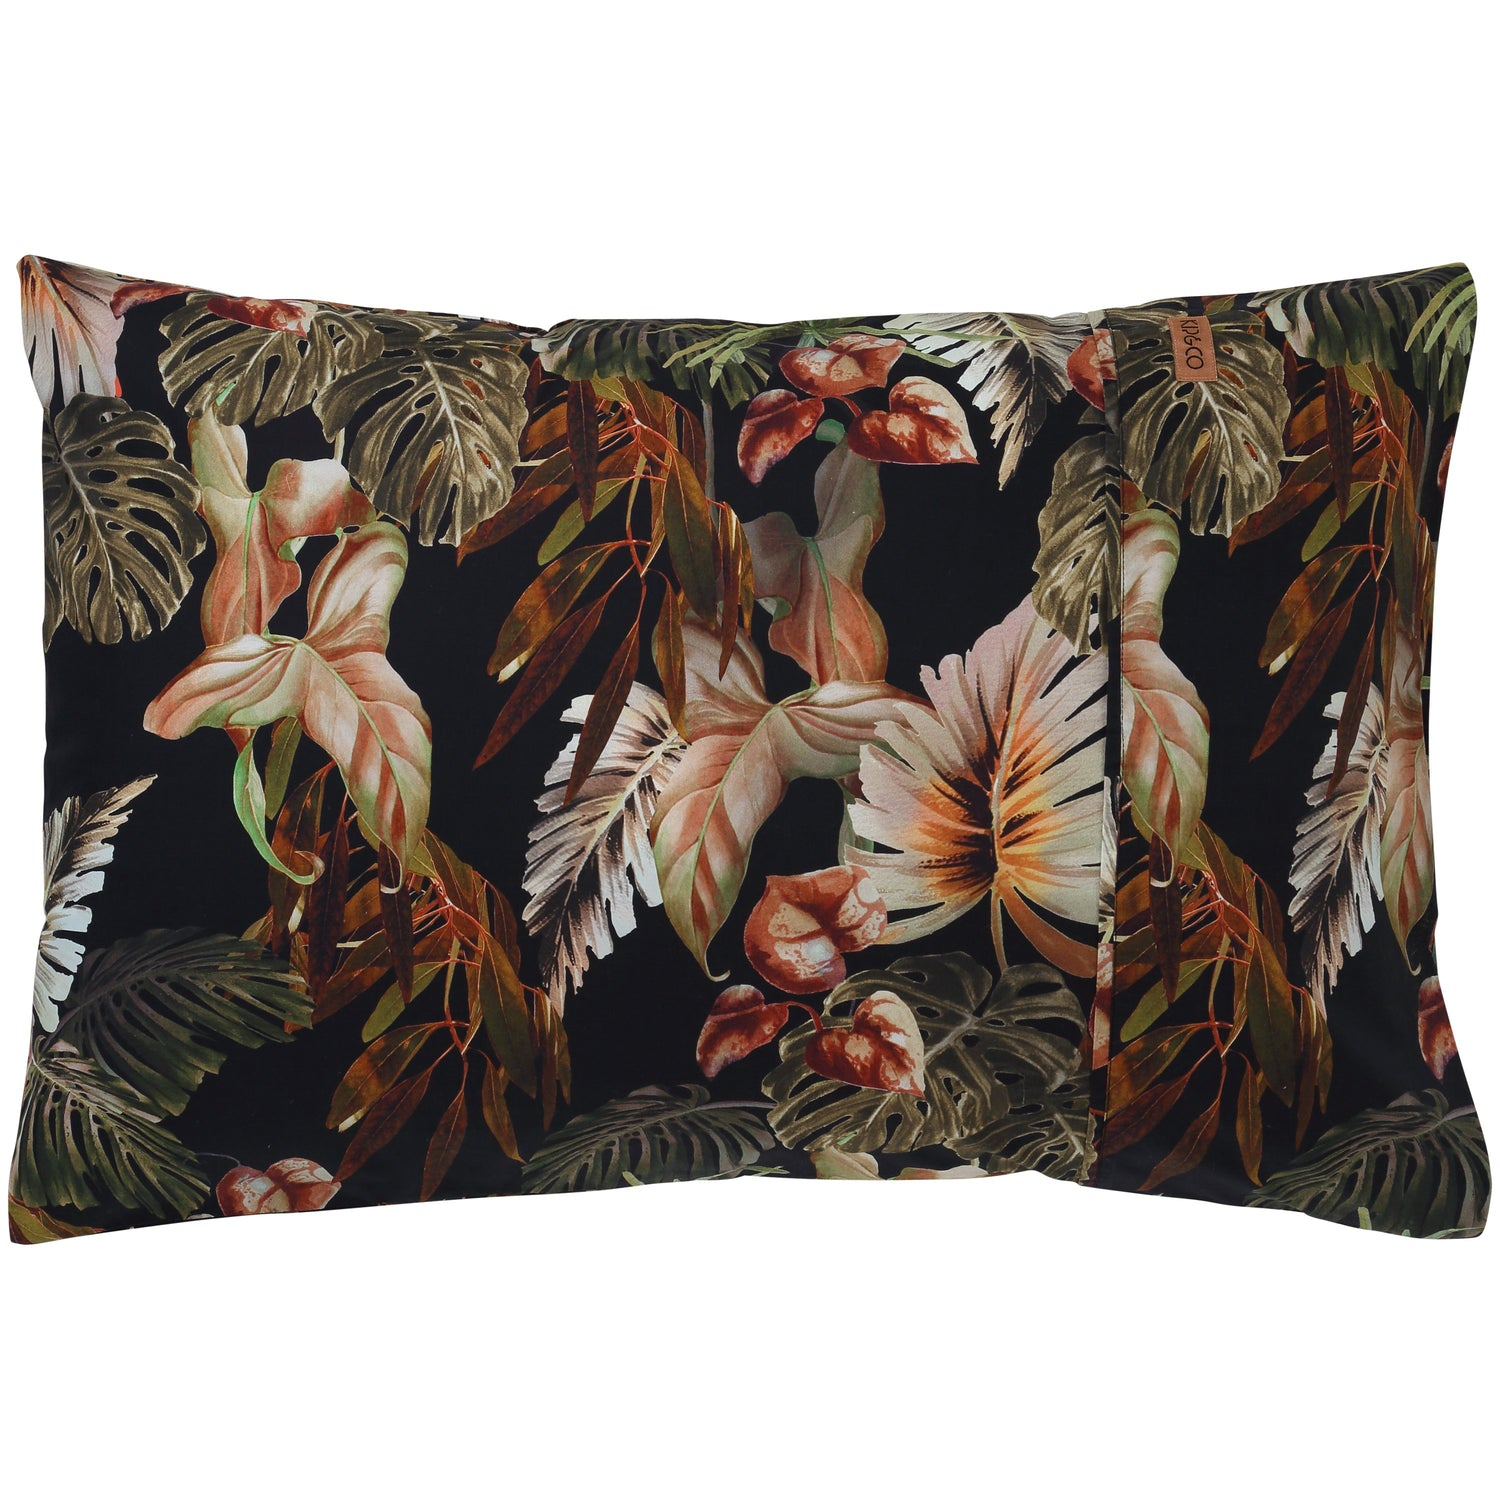 Kip & Co NIGHT JUNGLE COTTON PILLOWCASES 2P